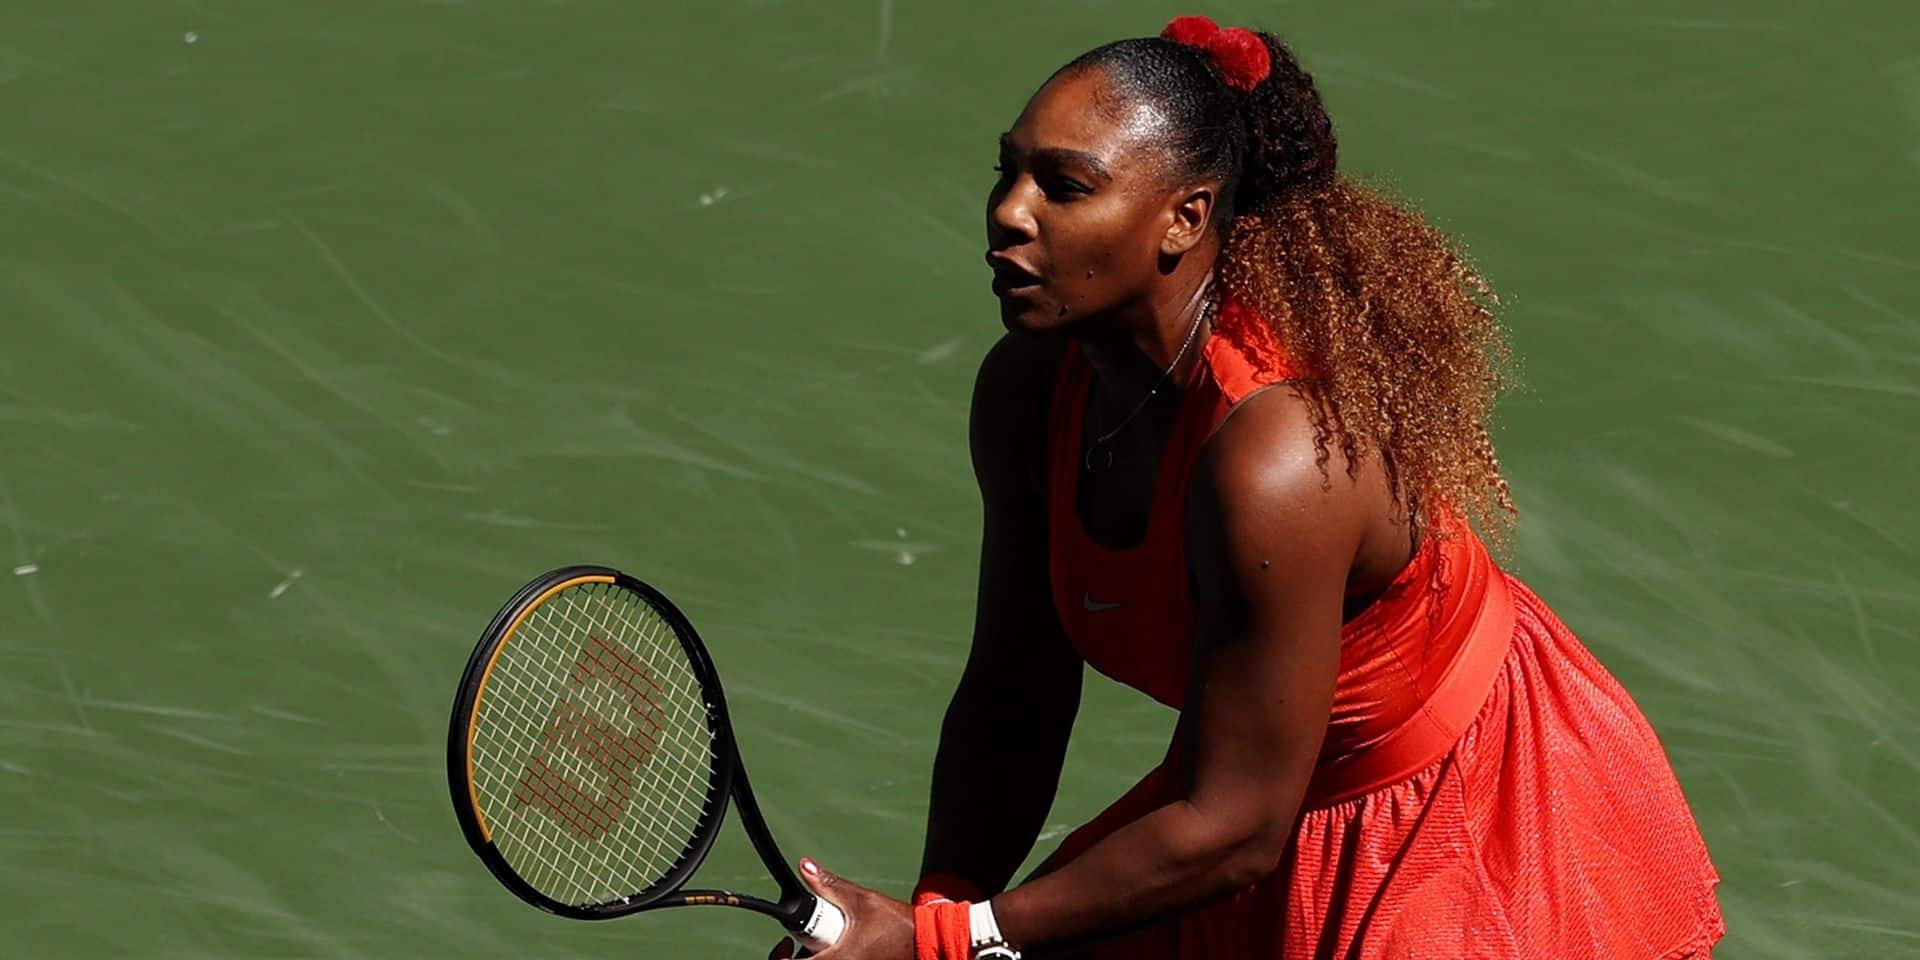 La nuit à l'US Open en un clin d'oeil : Serena poursuit sa mission